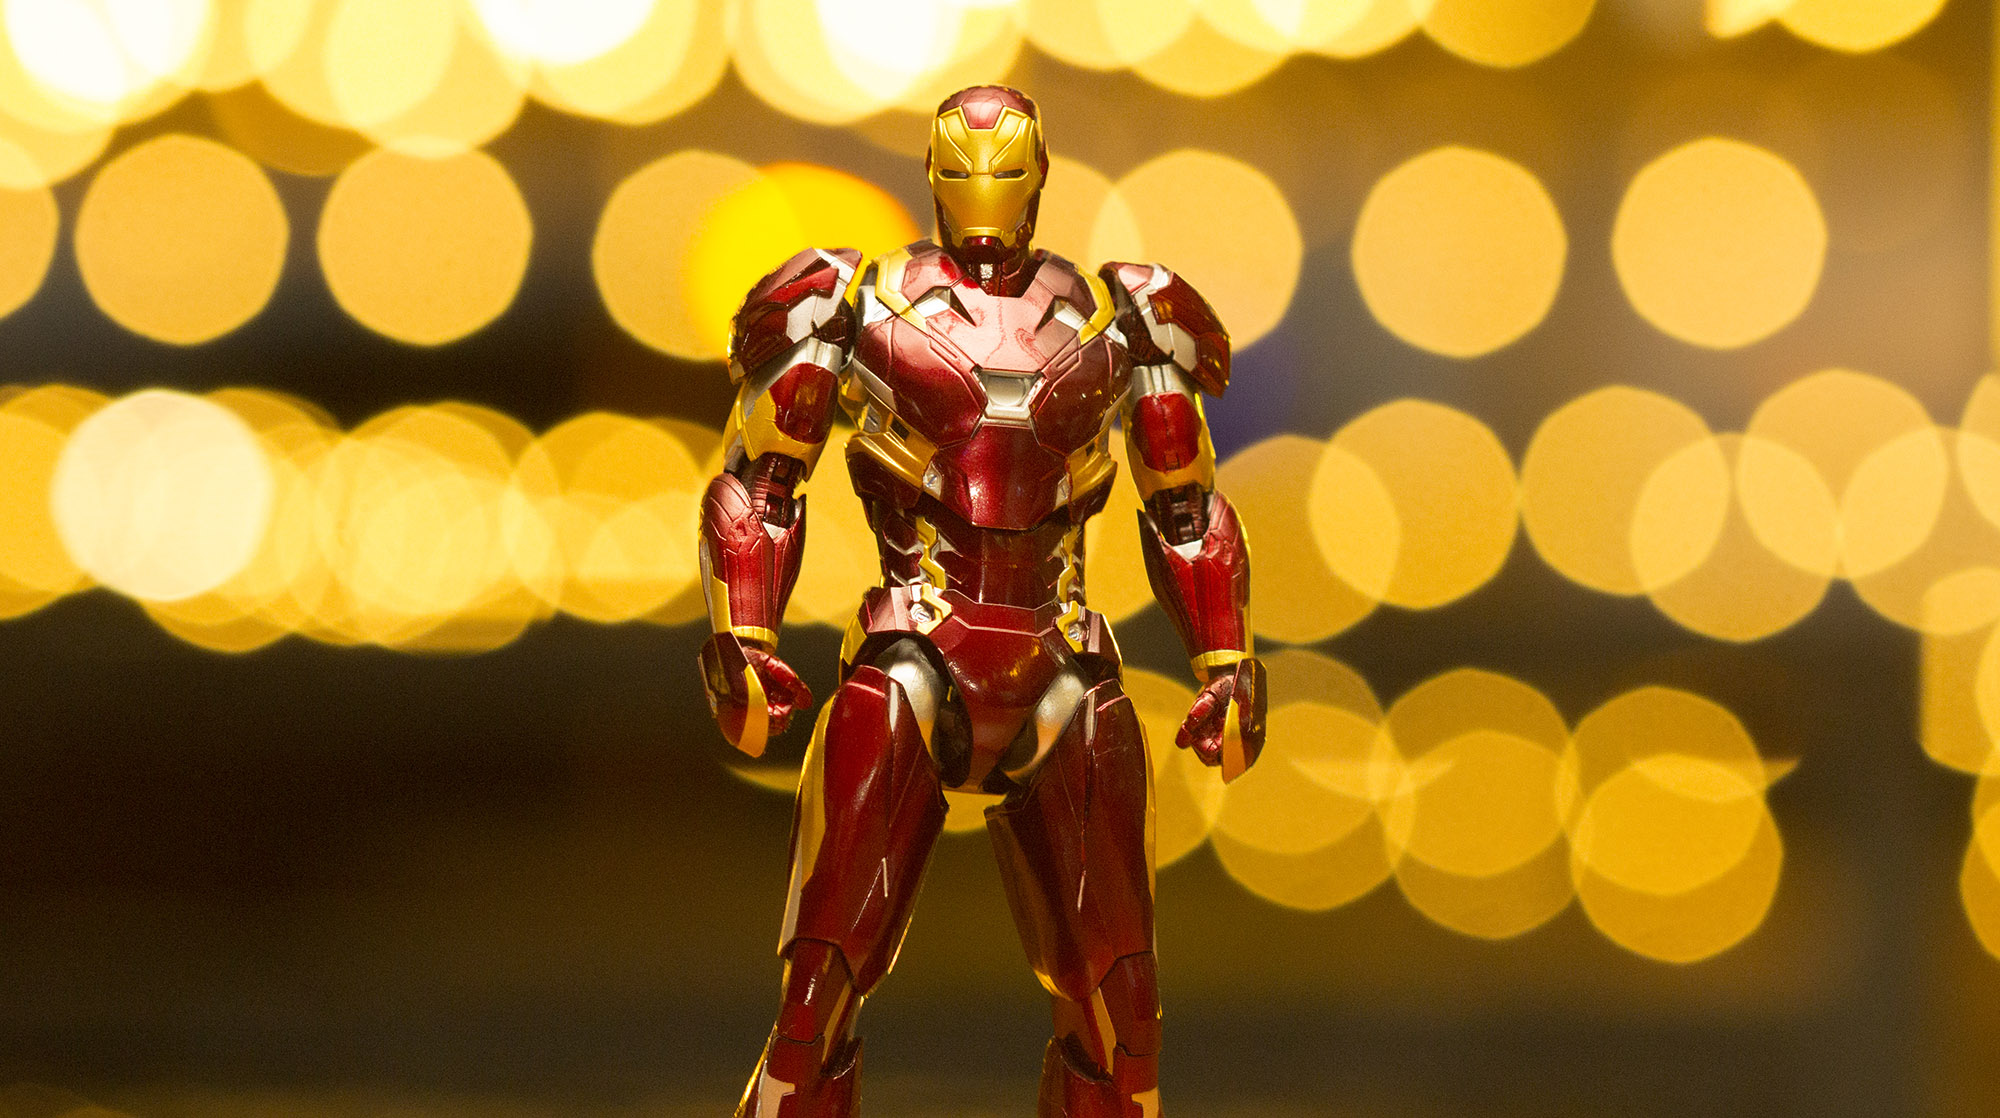 S.H.Figuarts Iron Man Mark 46 Civil War